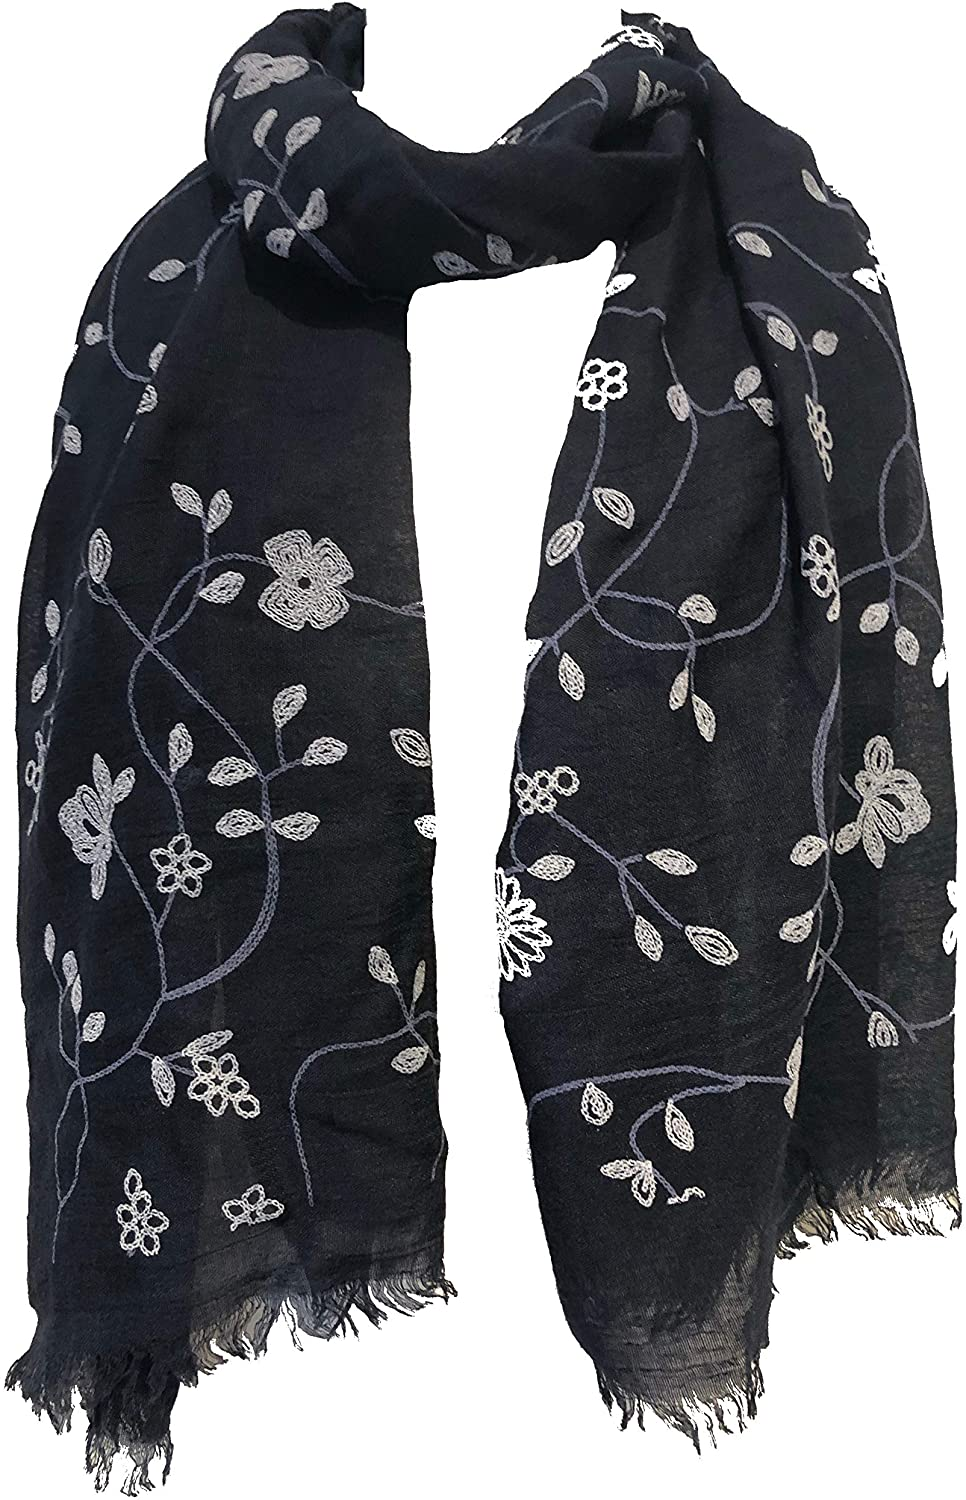 Pamper Yourself Now Navy with White Embroidered Flowers and Leaf Design Long Scarf/wrap with Frayed Edge